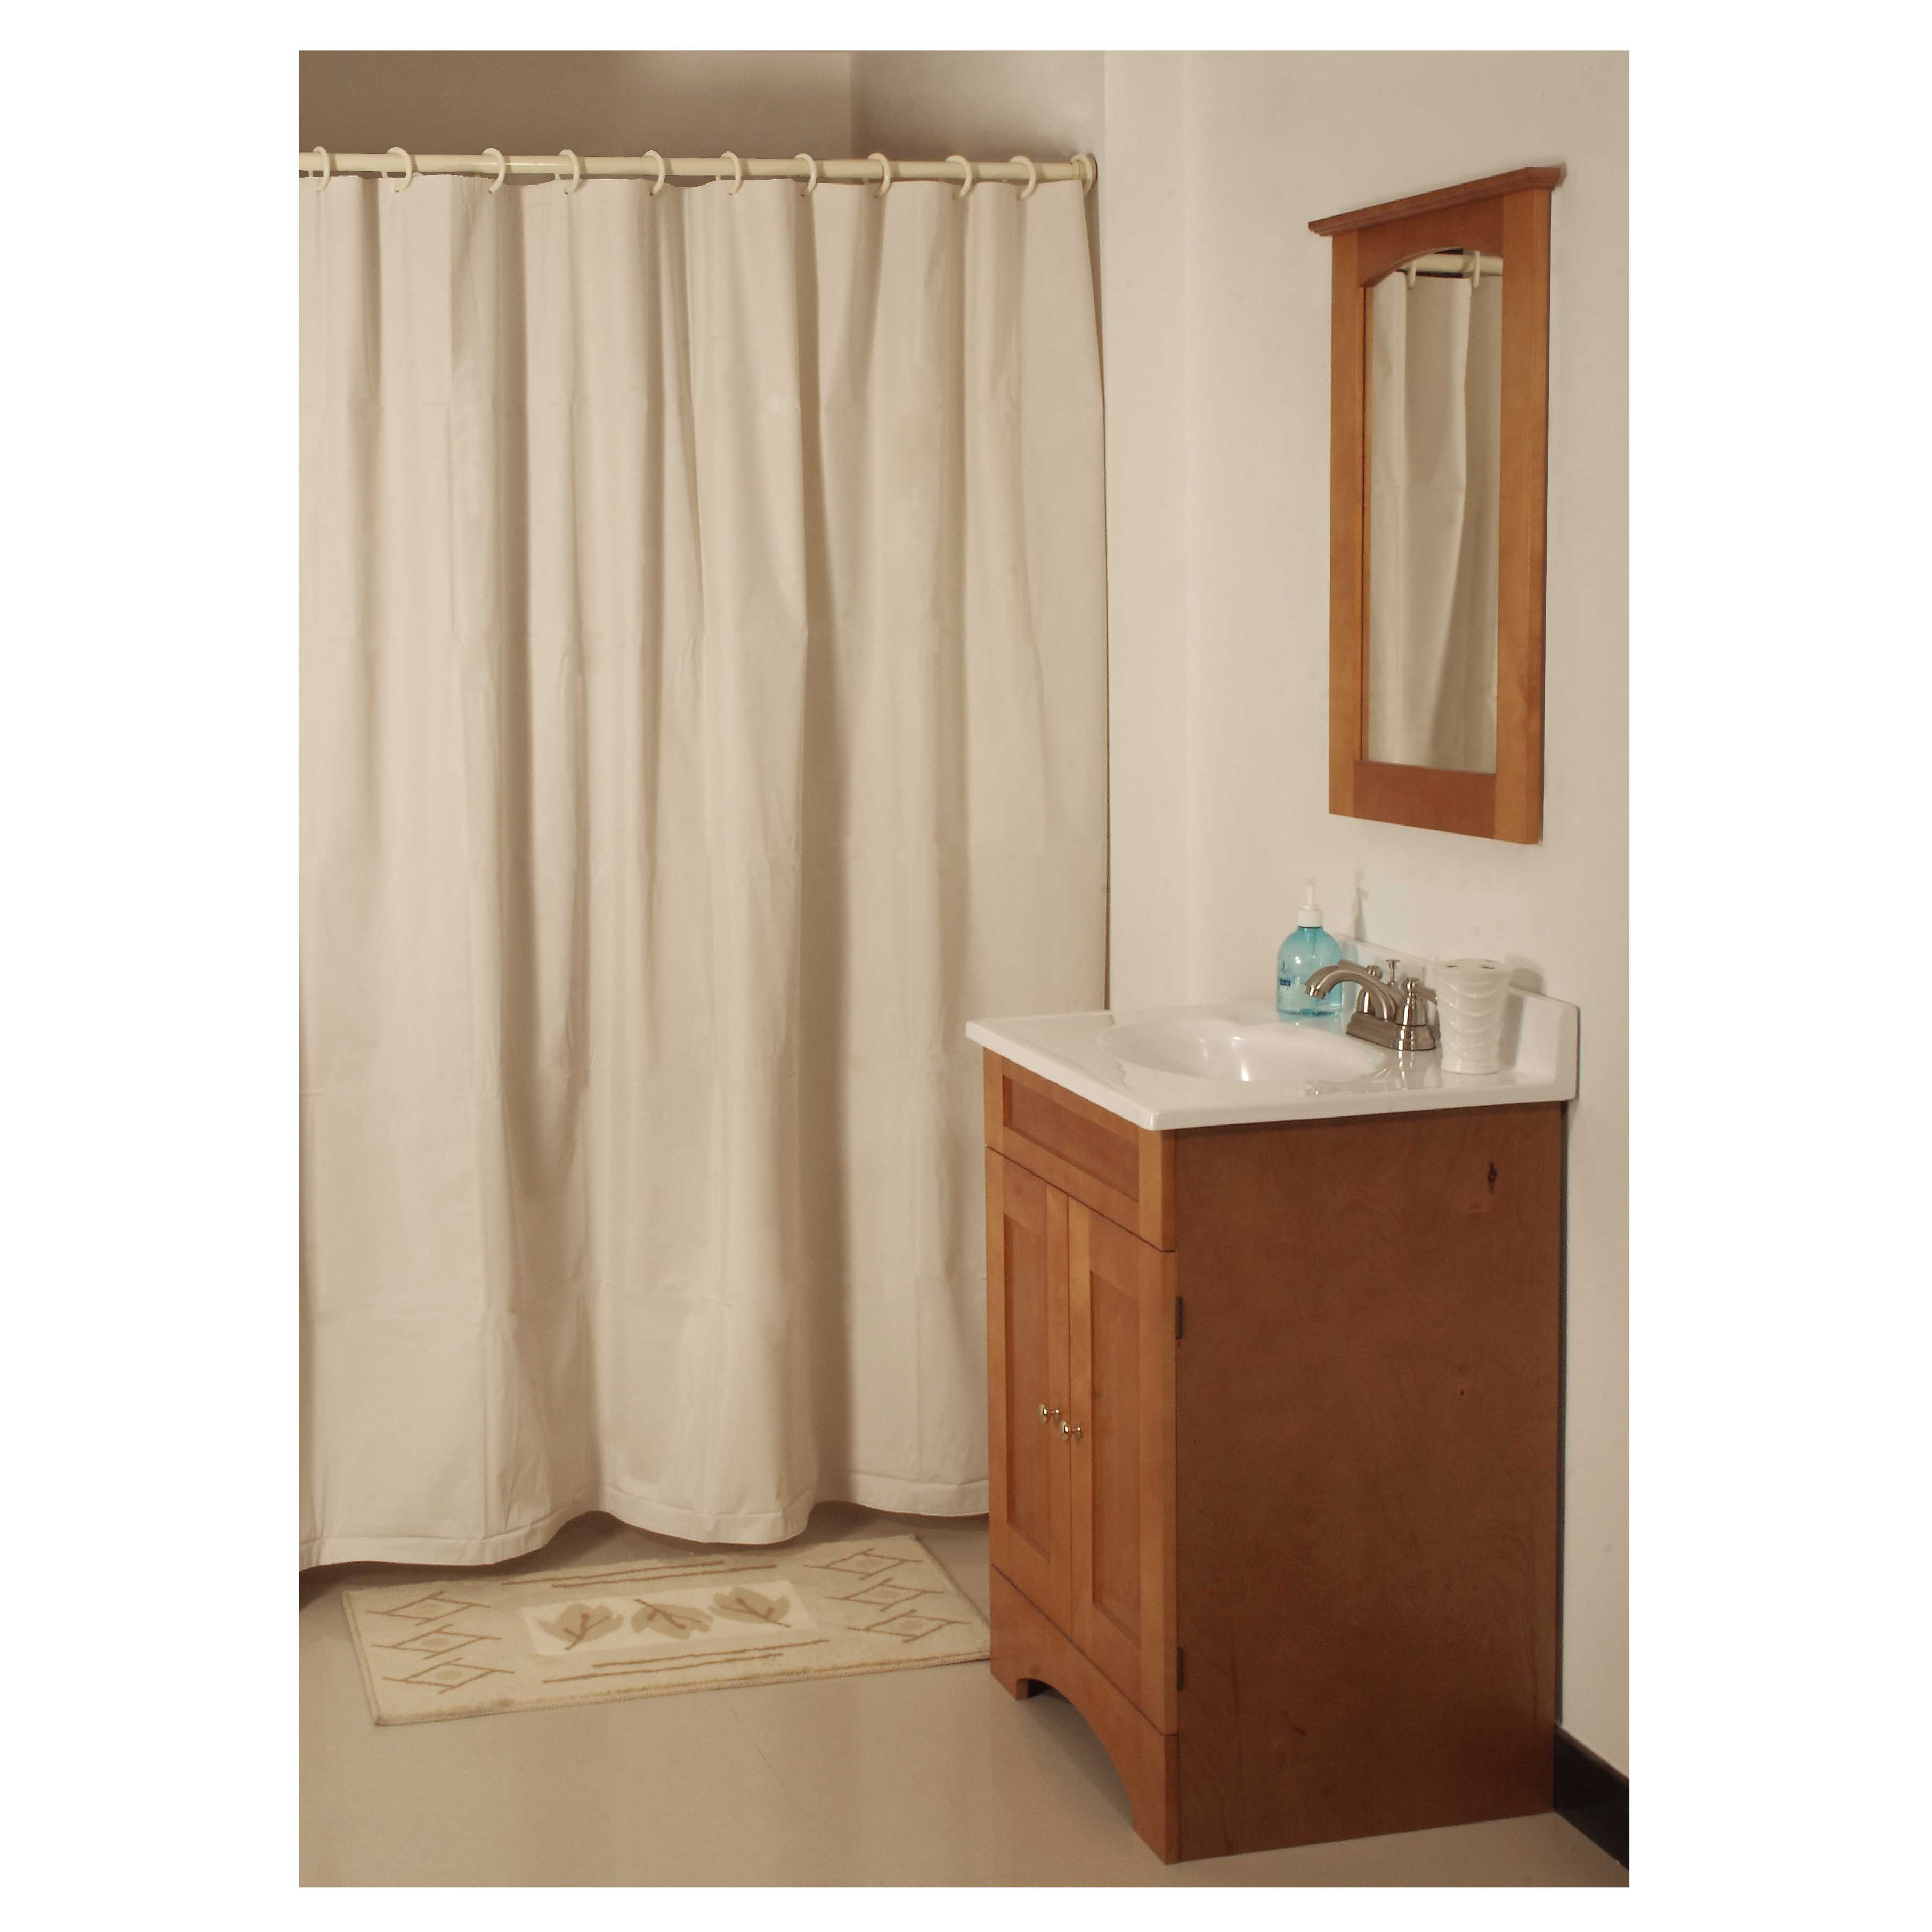 Picture of Simple Spaces SD-PCP01-B3L Shower Curtain, 72 in L, 70 in W, Vinyl, Beige